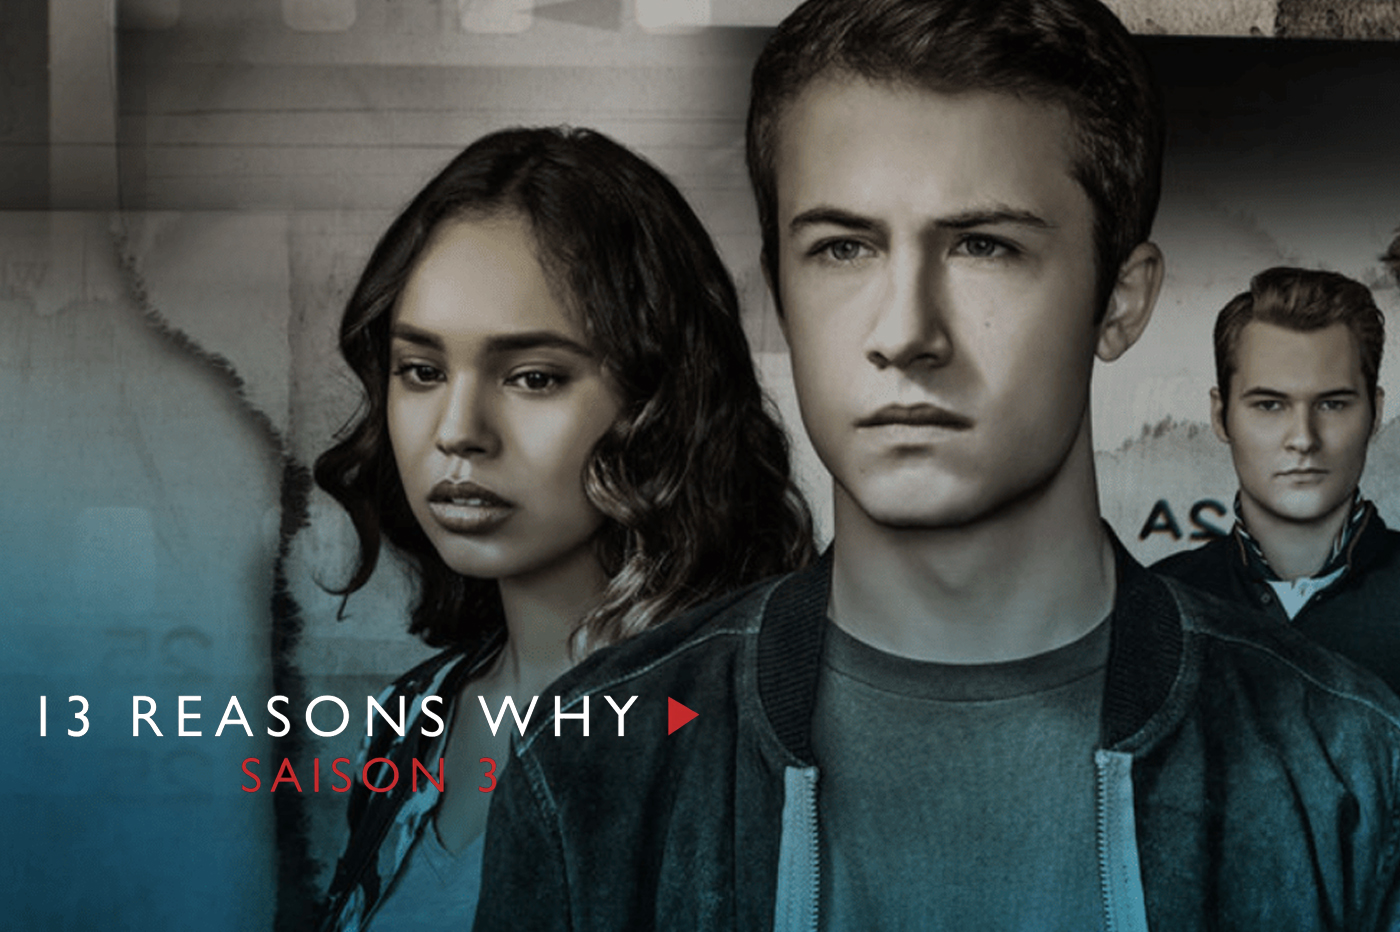 13 Reasons Why Season 2 Stream